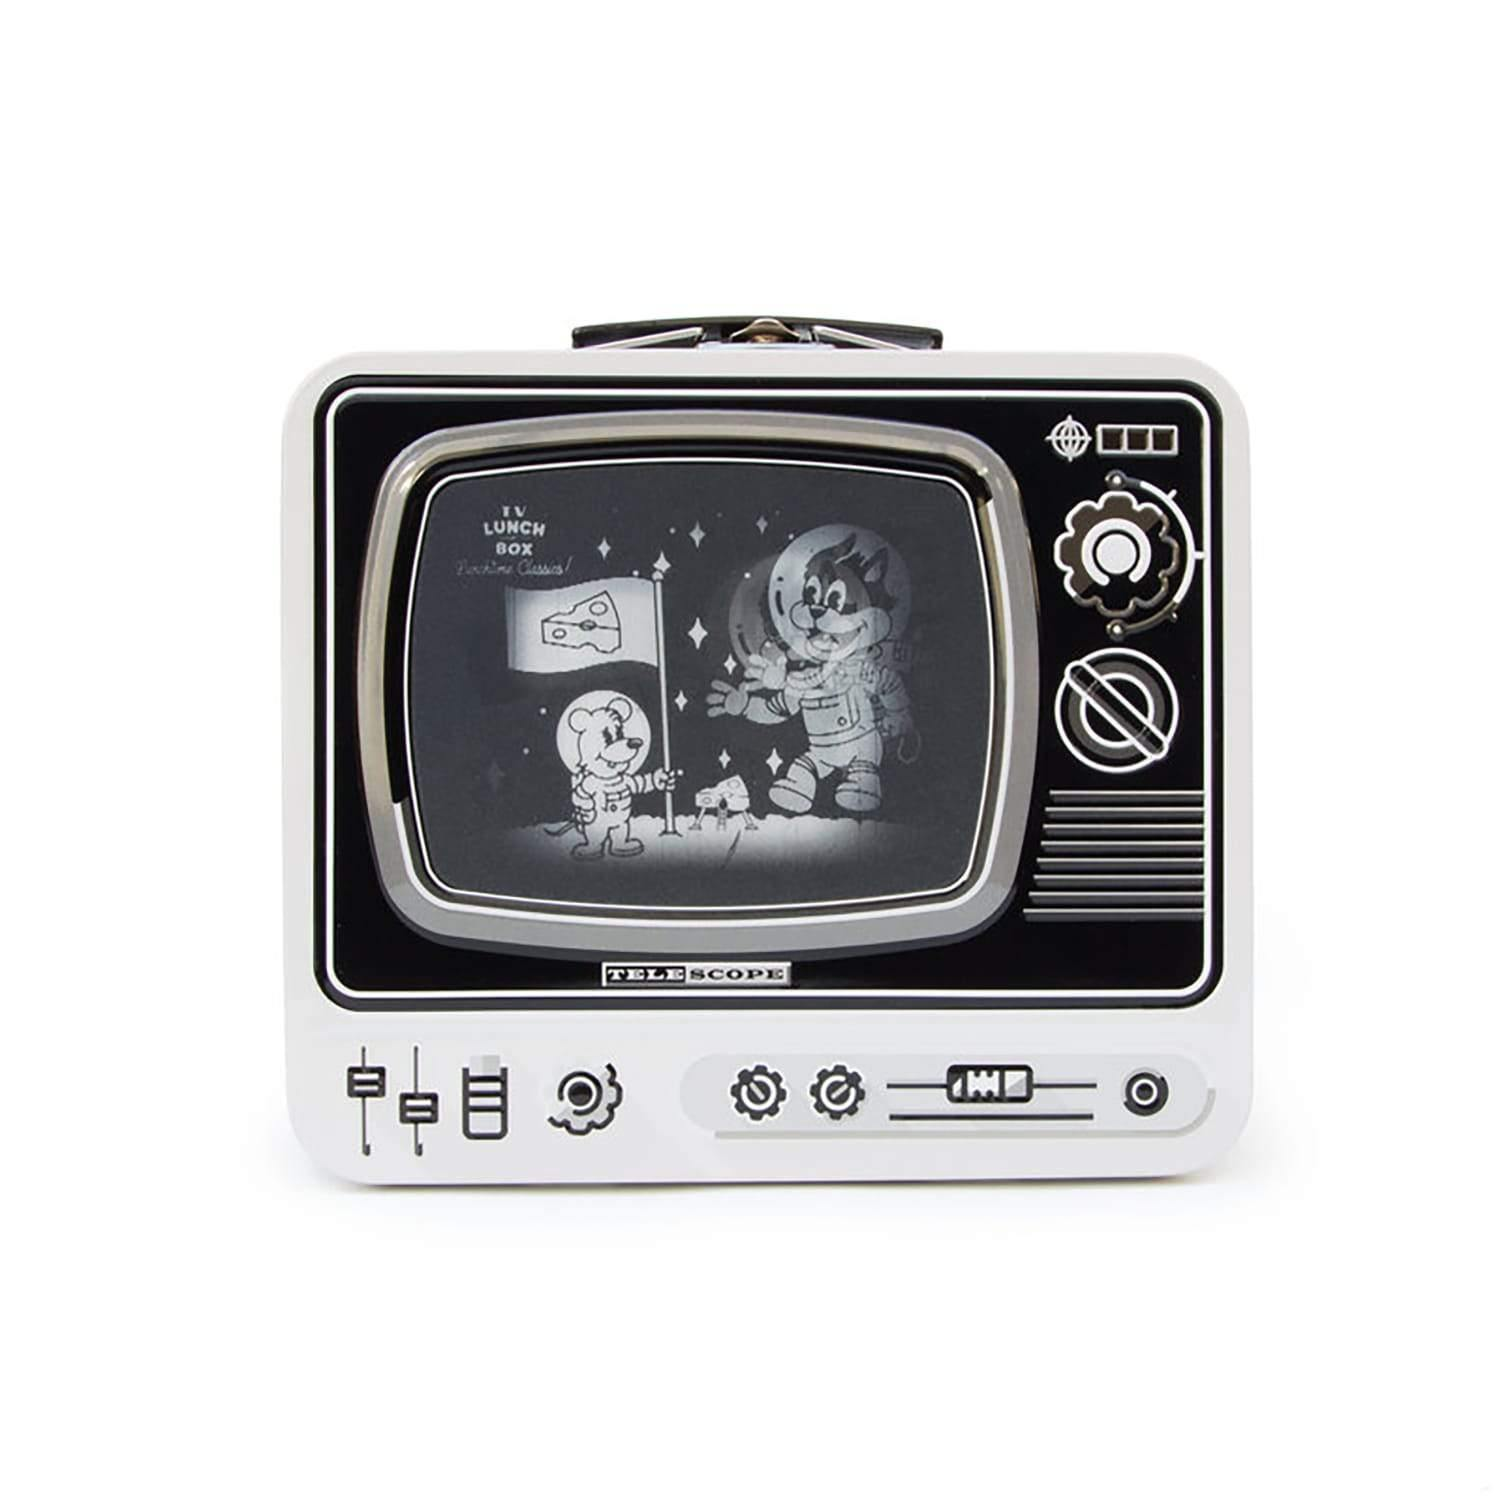 LDN Lunch Box TV Space (White) - Science Museum Shop 4